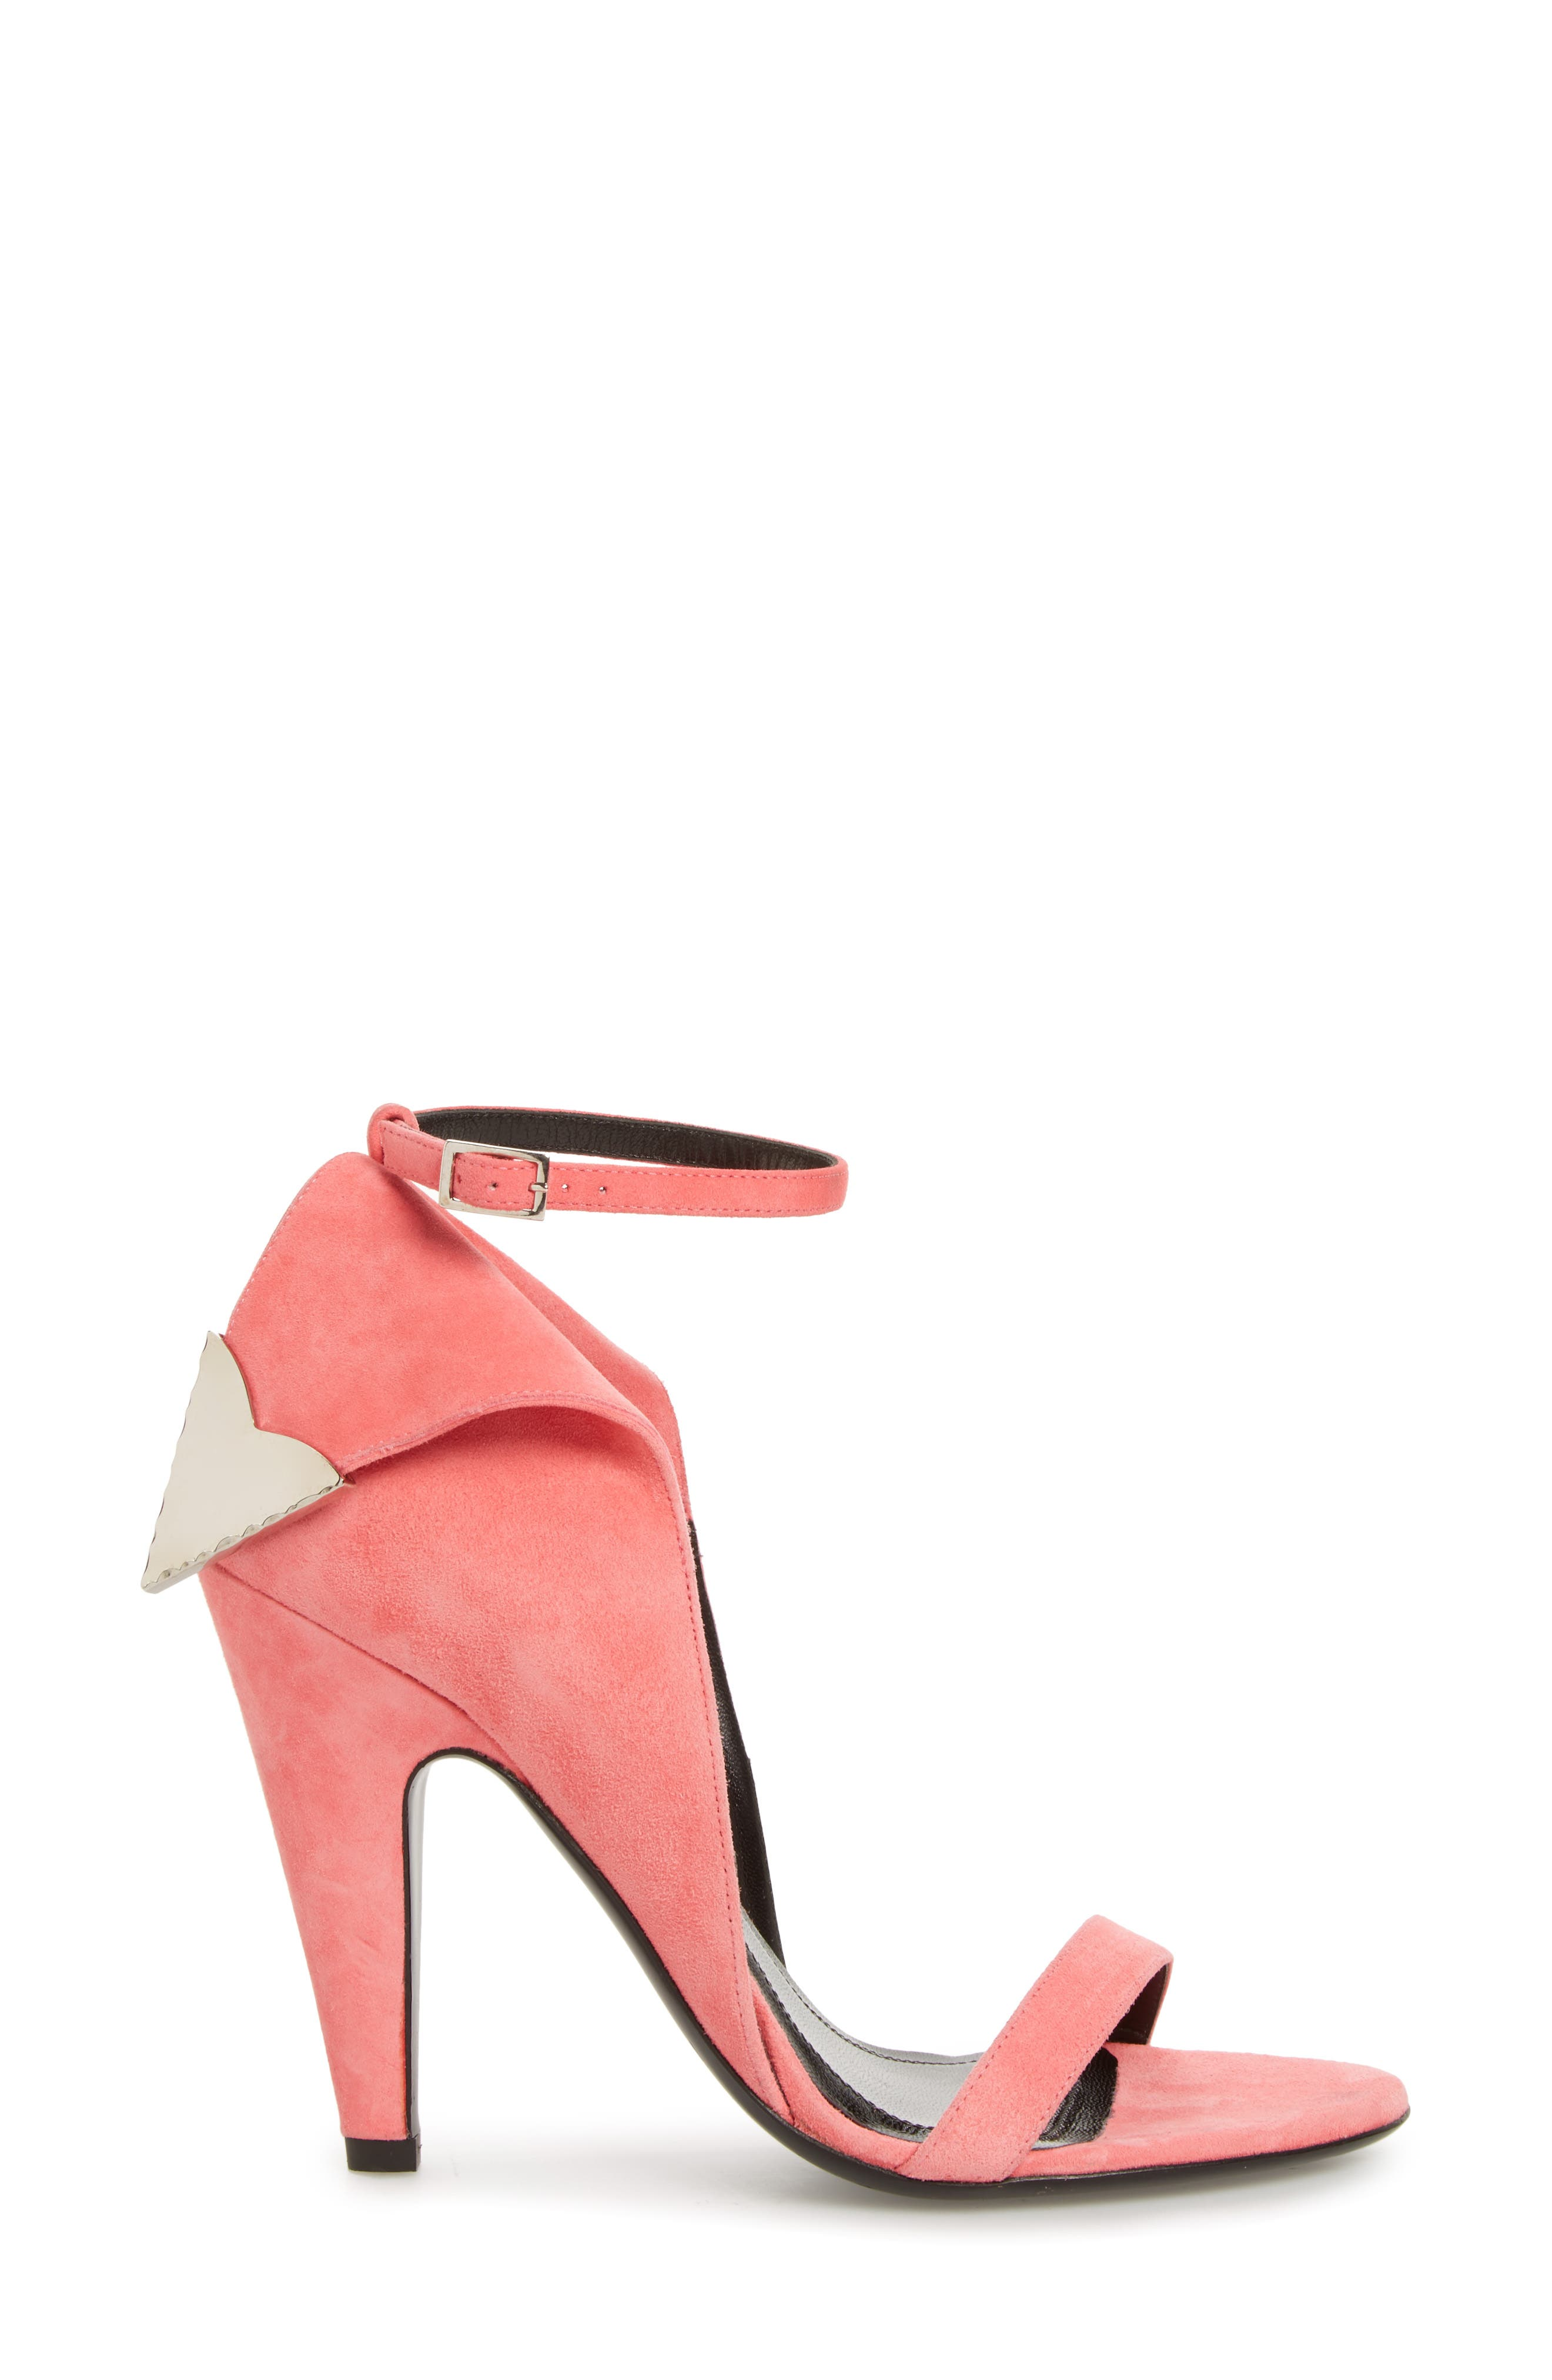 Leititia Ankle Strap Sandal,                             Alternate thumbnail 3, color,                             Blush